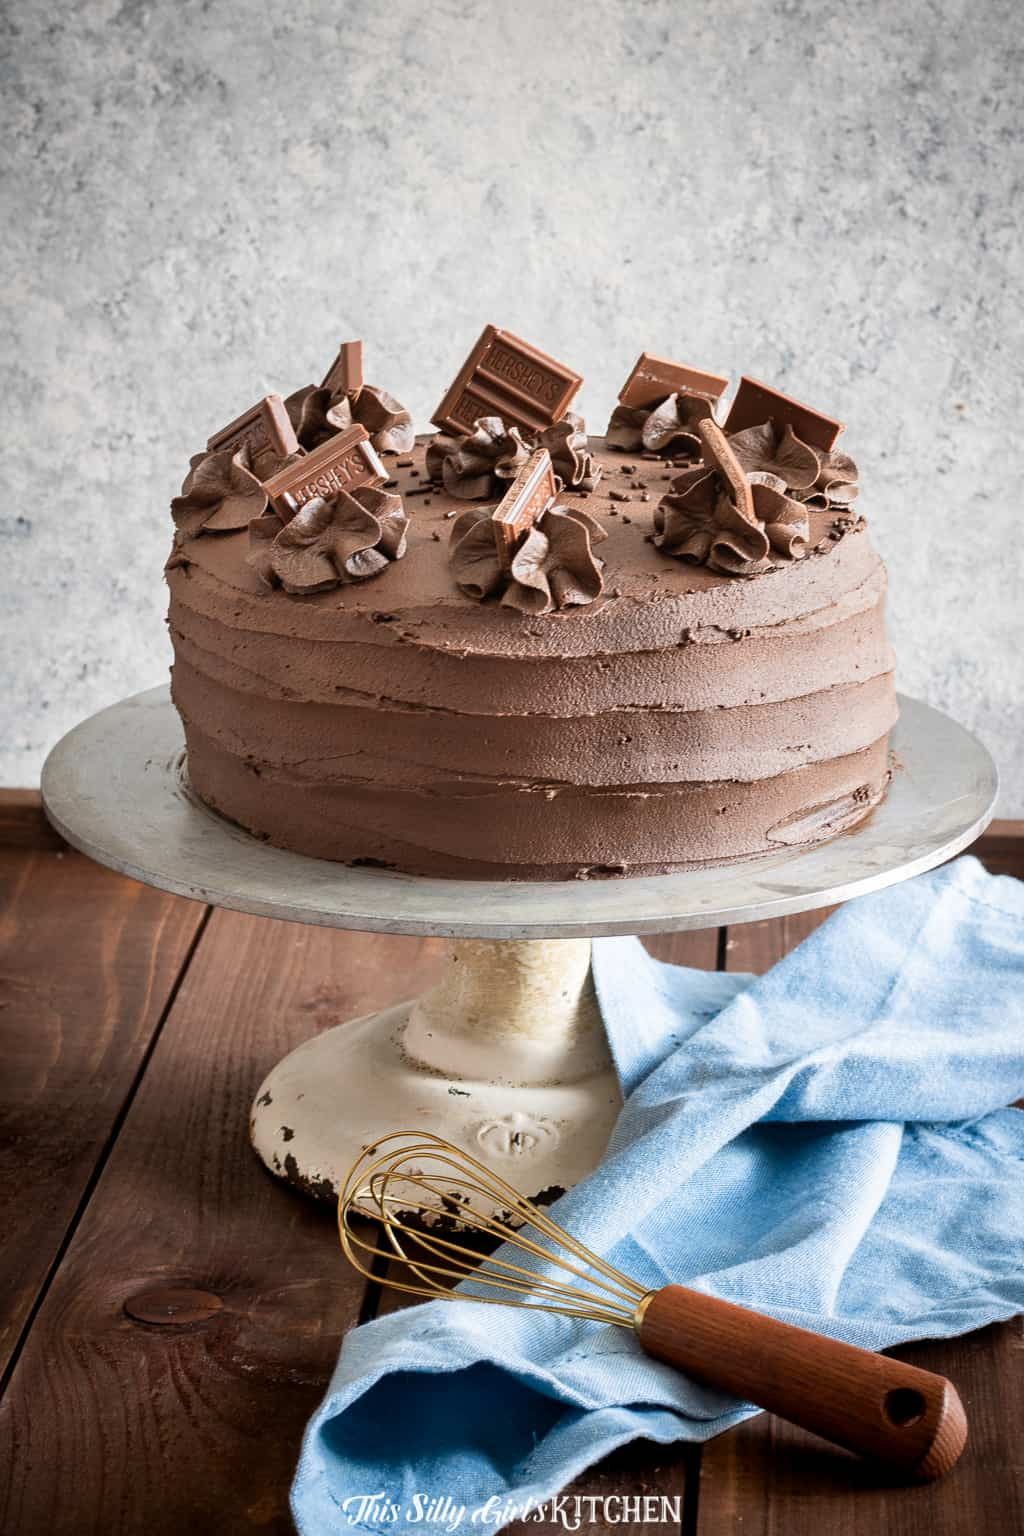 Chocolate Layer Cake on cake stand with whisk